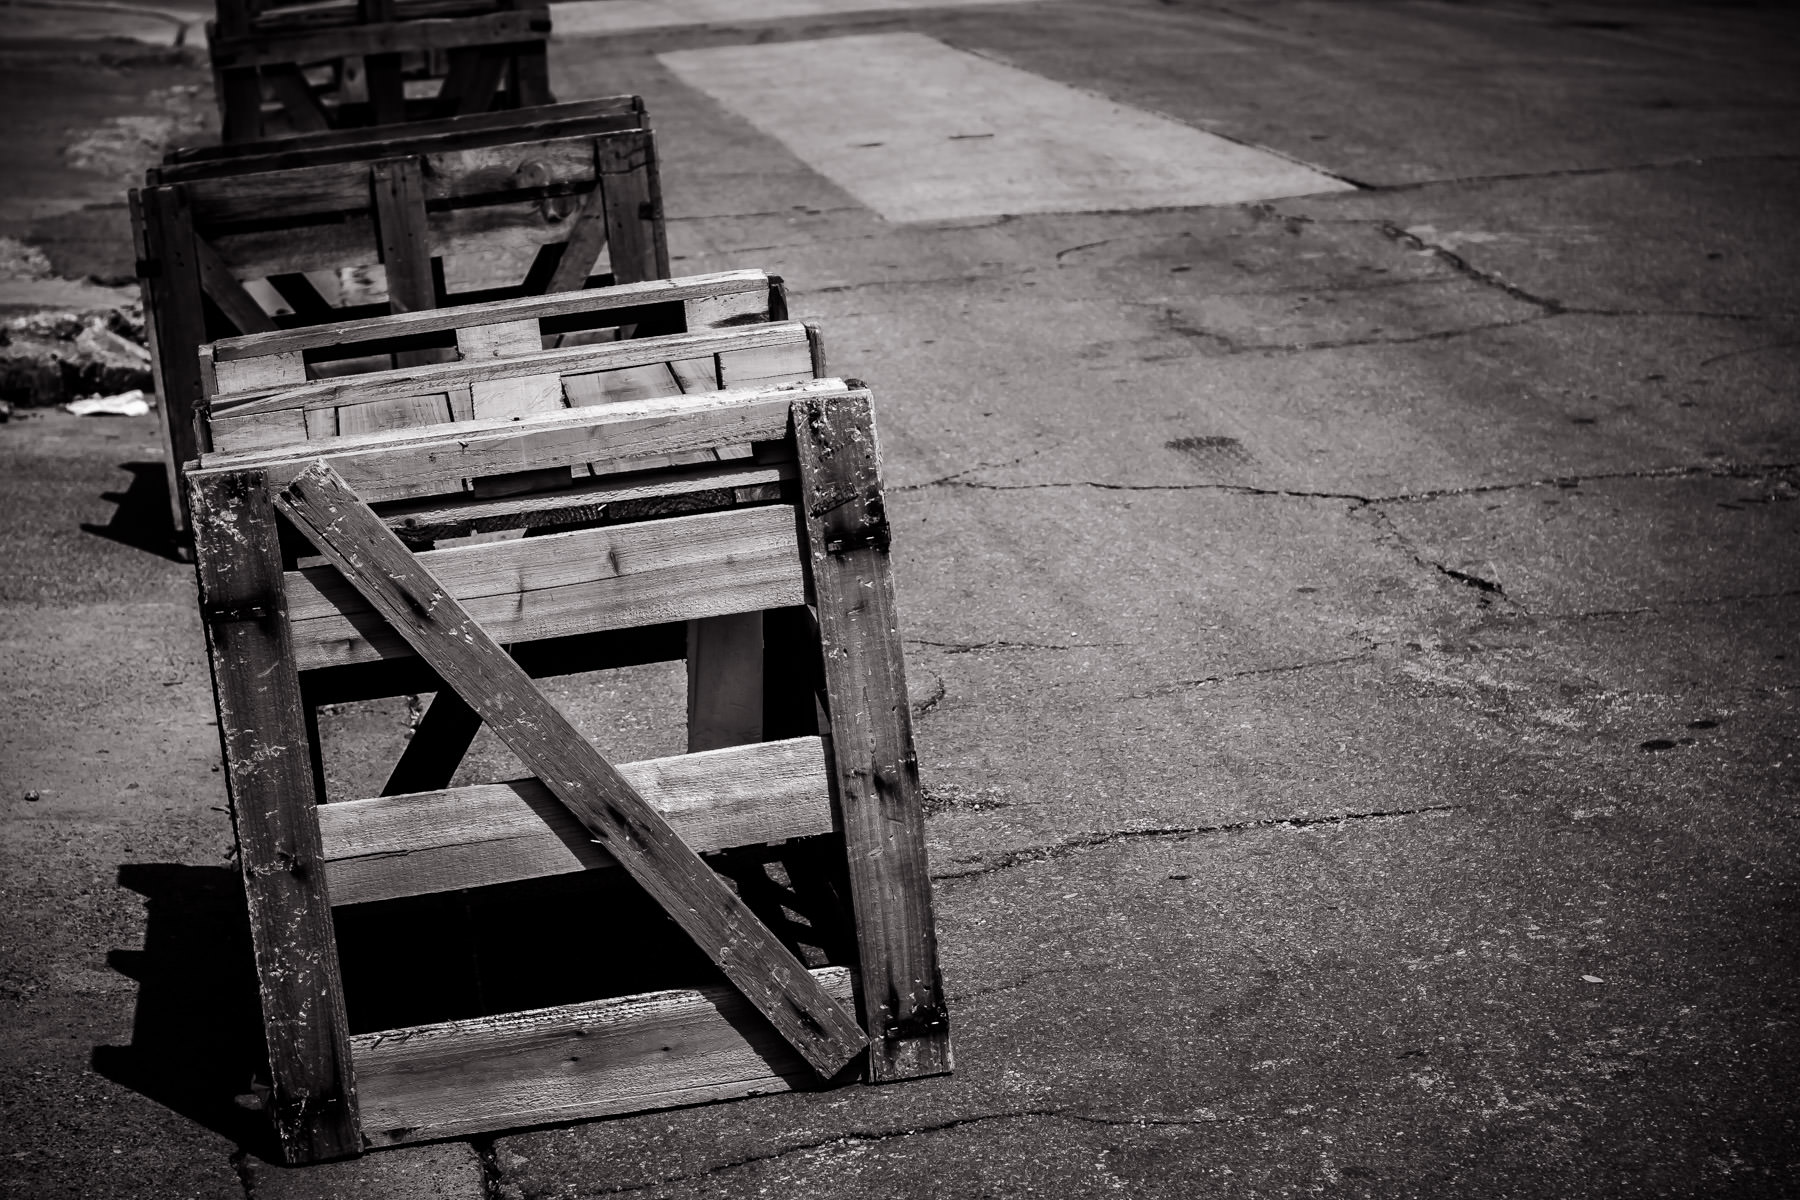 A line of crates being used to block access to a road in Oak Cliff, Dallas.